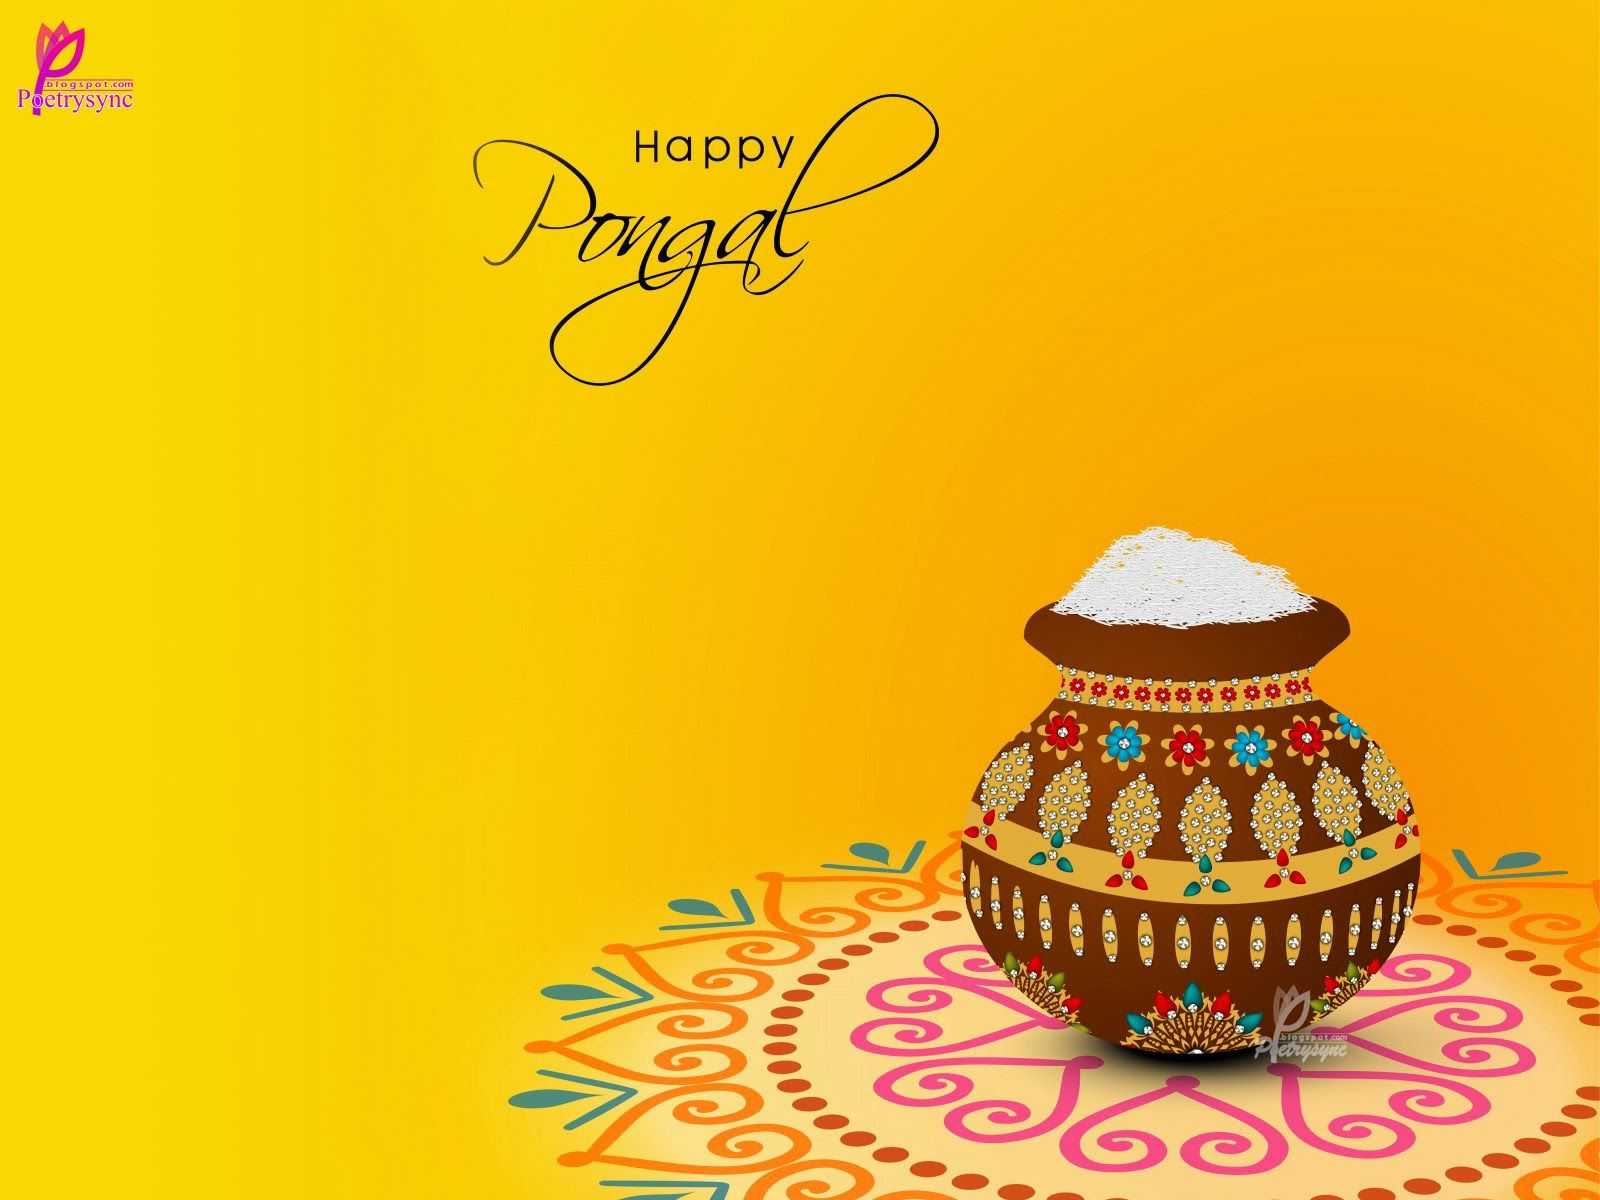 Beautiful Pongal Festival Wishes Card Wallpaper Pongal Wishes